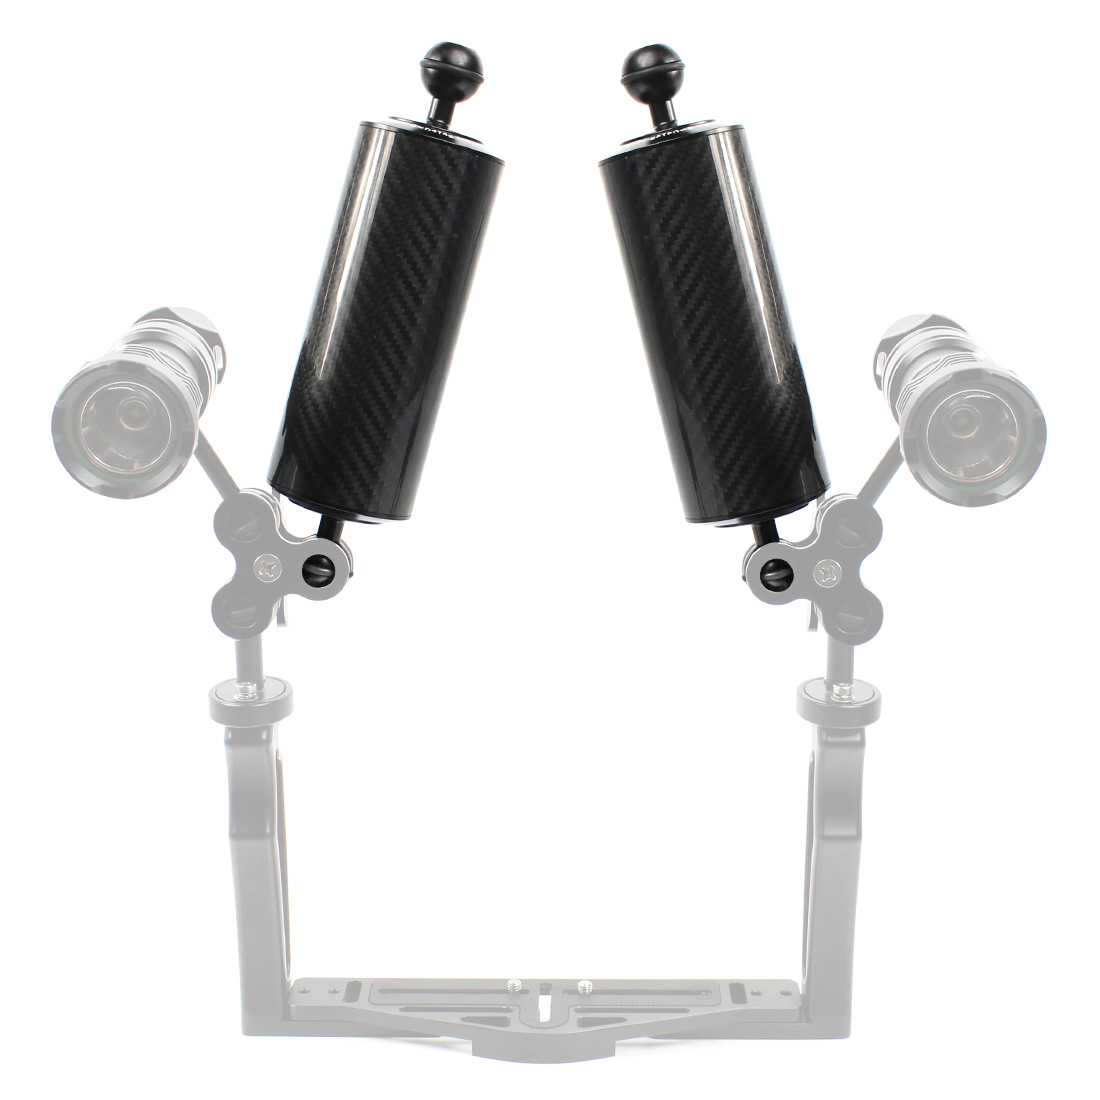 XT-XINTE Diving Dual Ball Diving Lighting Arm with Buoyancy Arm Extension Lens Base for Action Camera Accessories